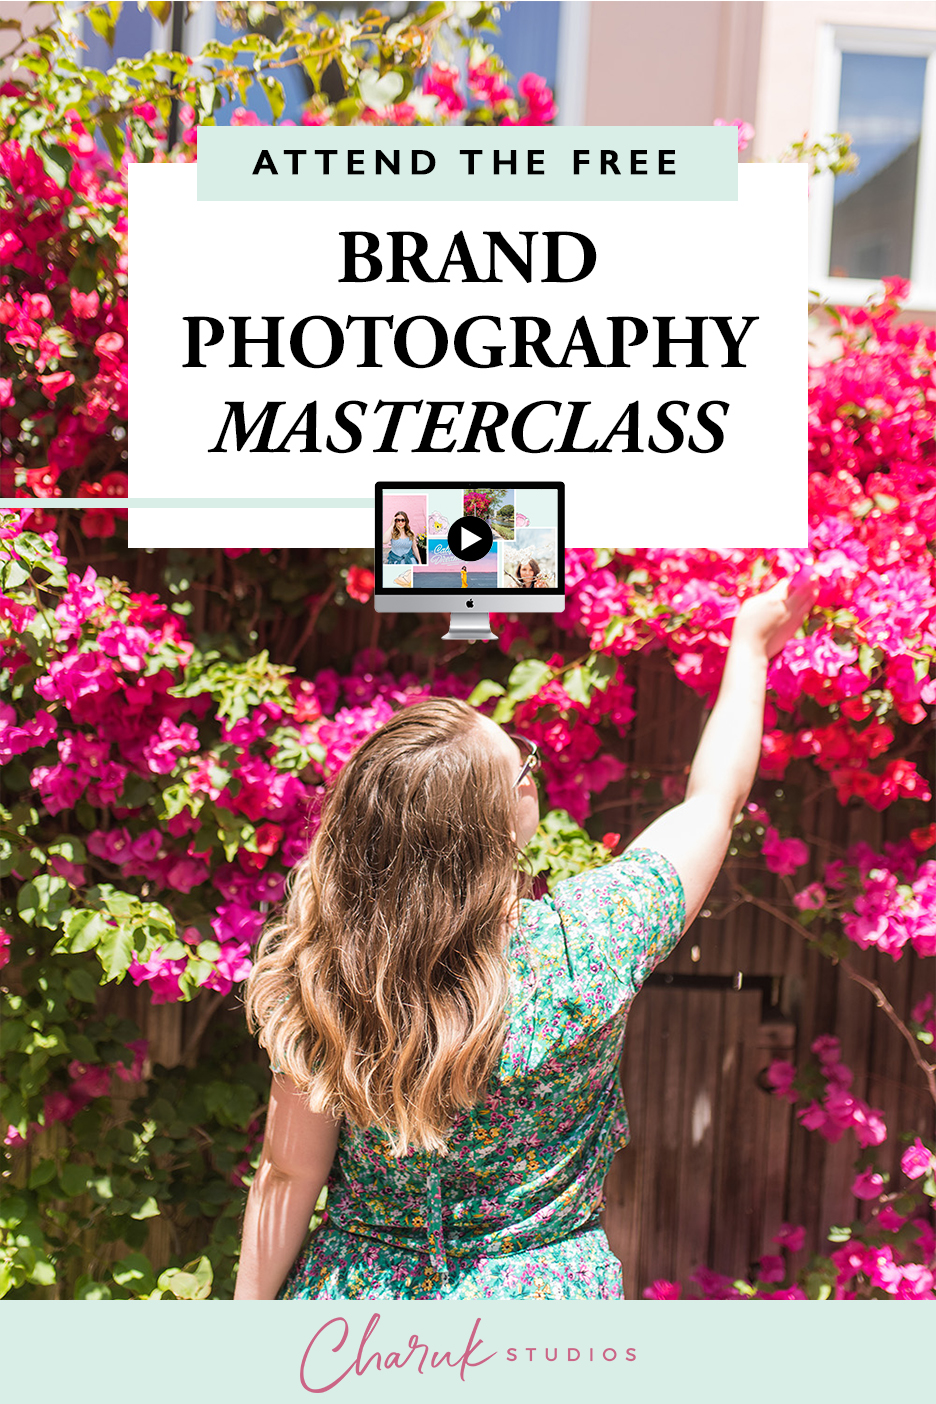 Attend the Free Brand Photography Masterclass by Charuk Studios